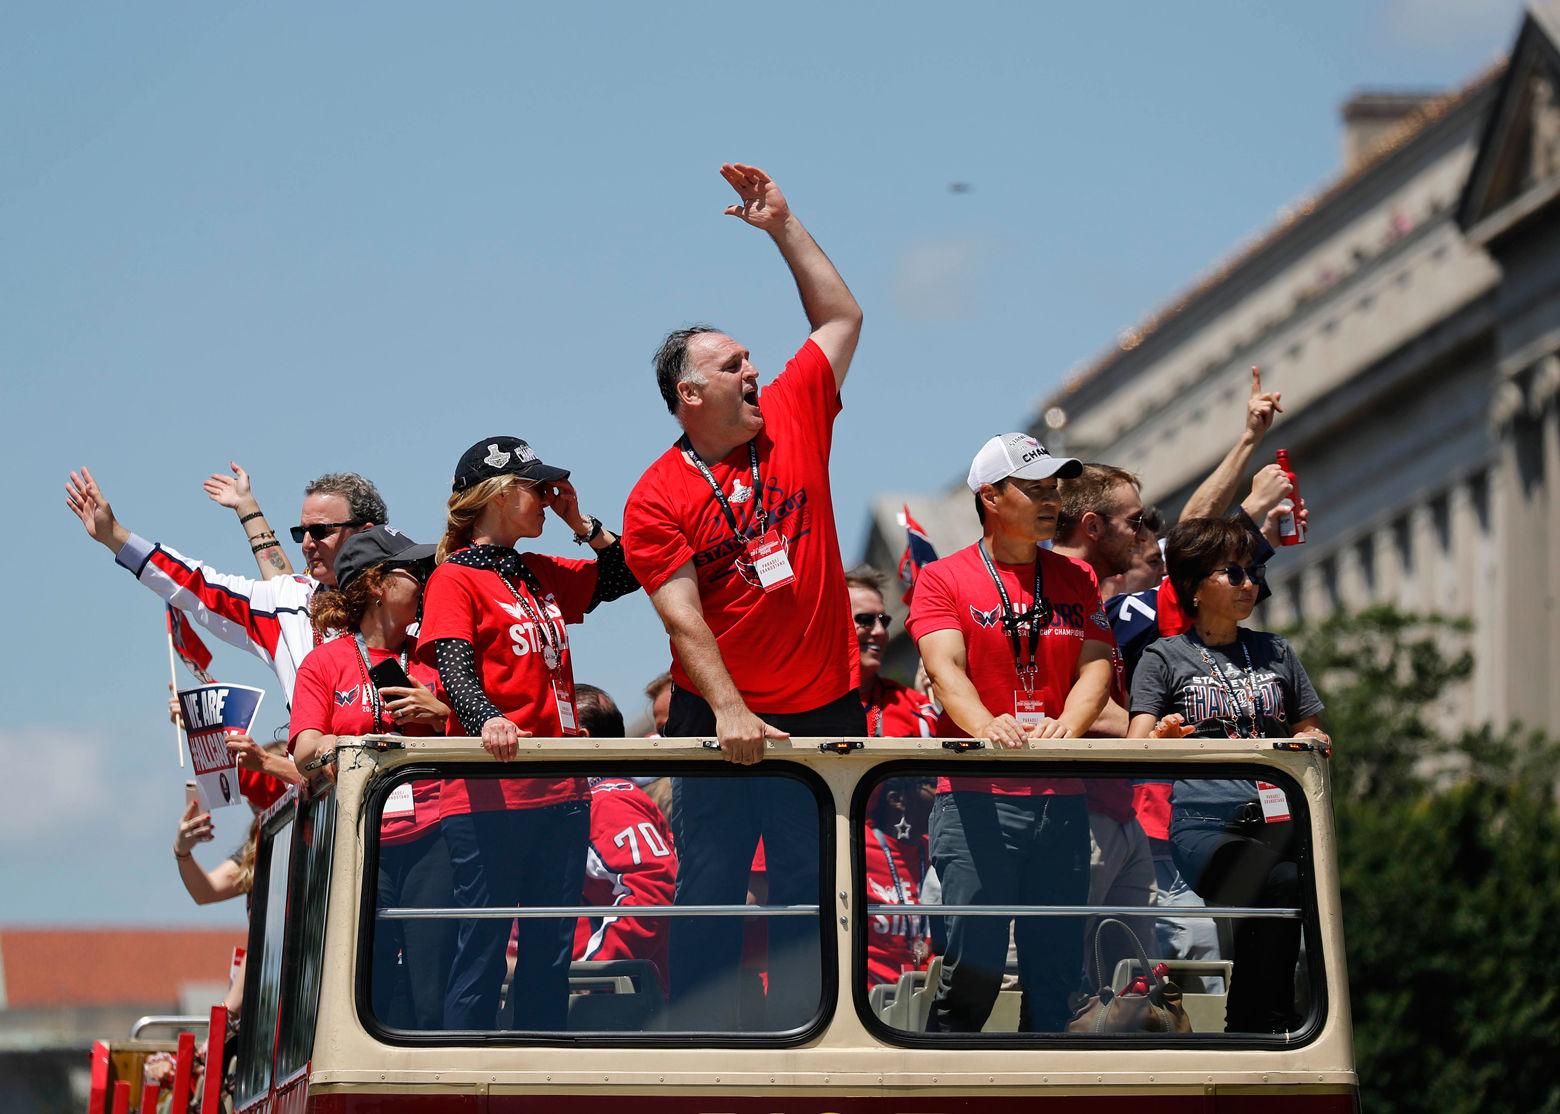 Chef Jose Andres, center, gestures while celebrating during the Washington Capitals NHL hockey Stanley Cup victory. (AP Photo/Pablo Martinez Monsivais)